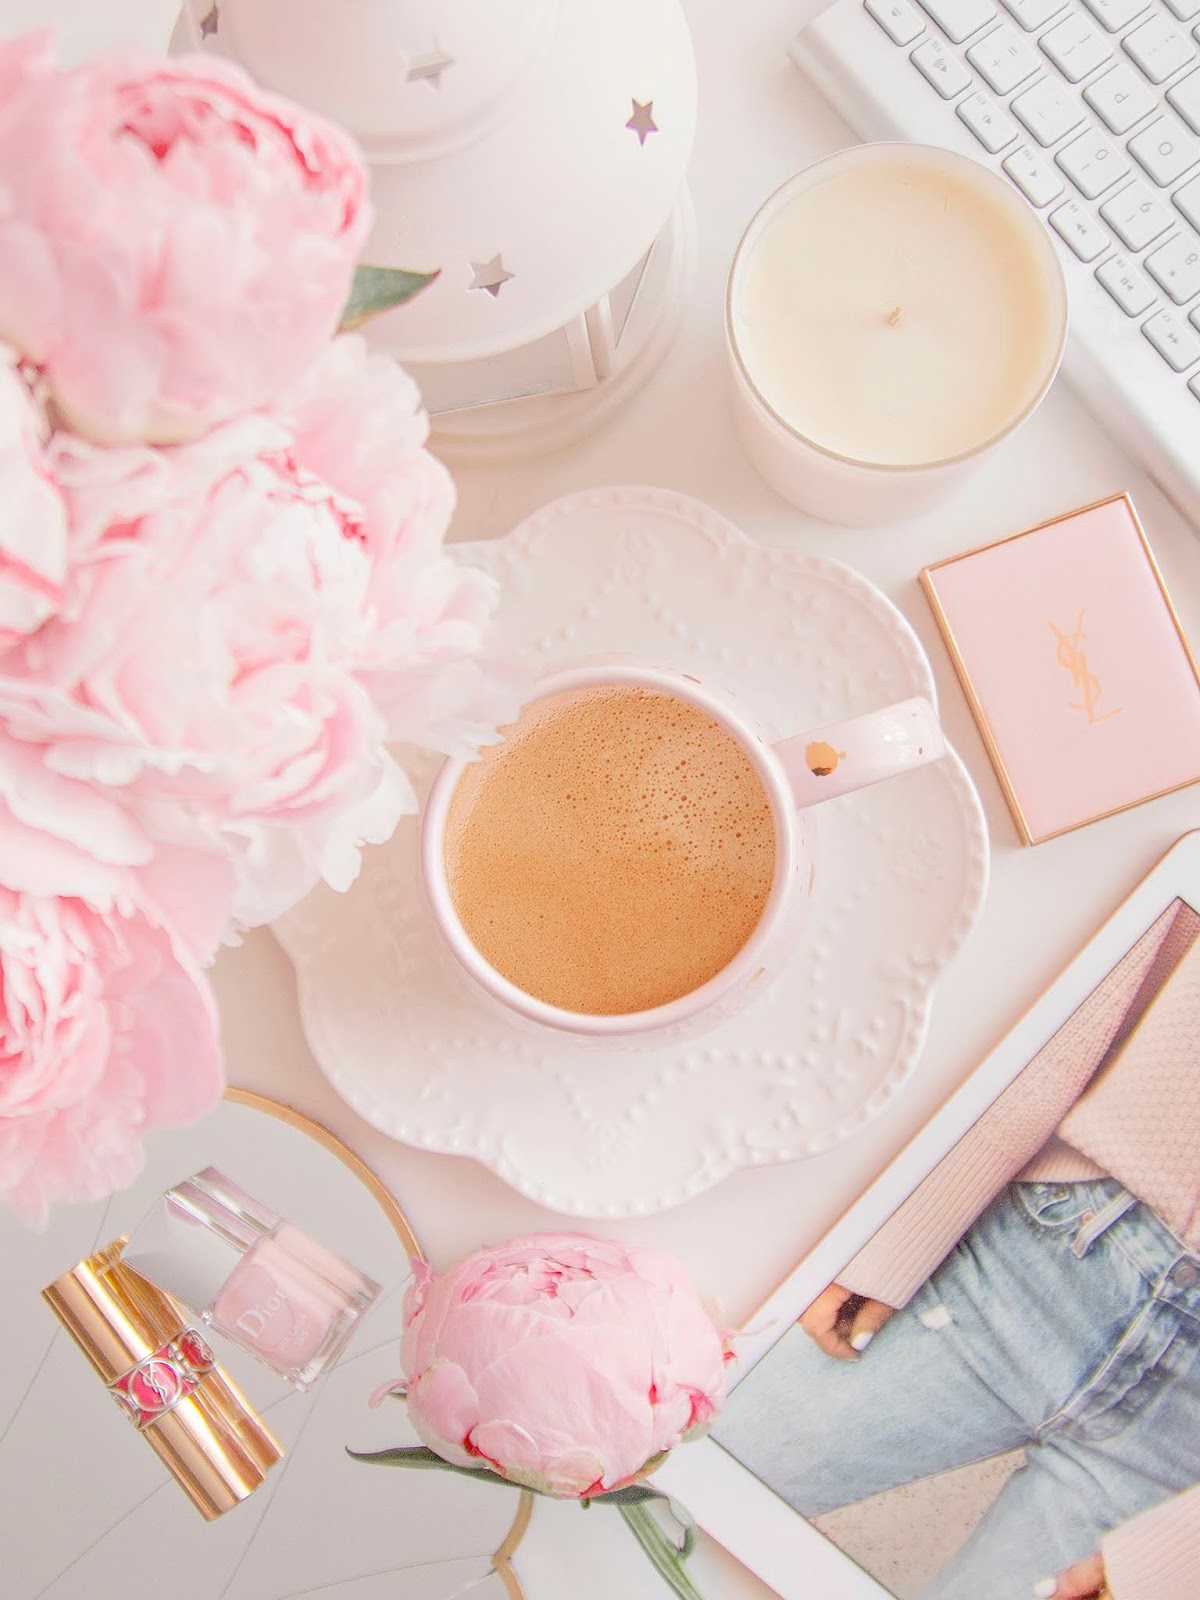 A cup of tea surrounded by pink flowers and candles